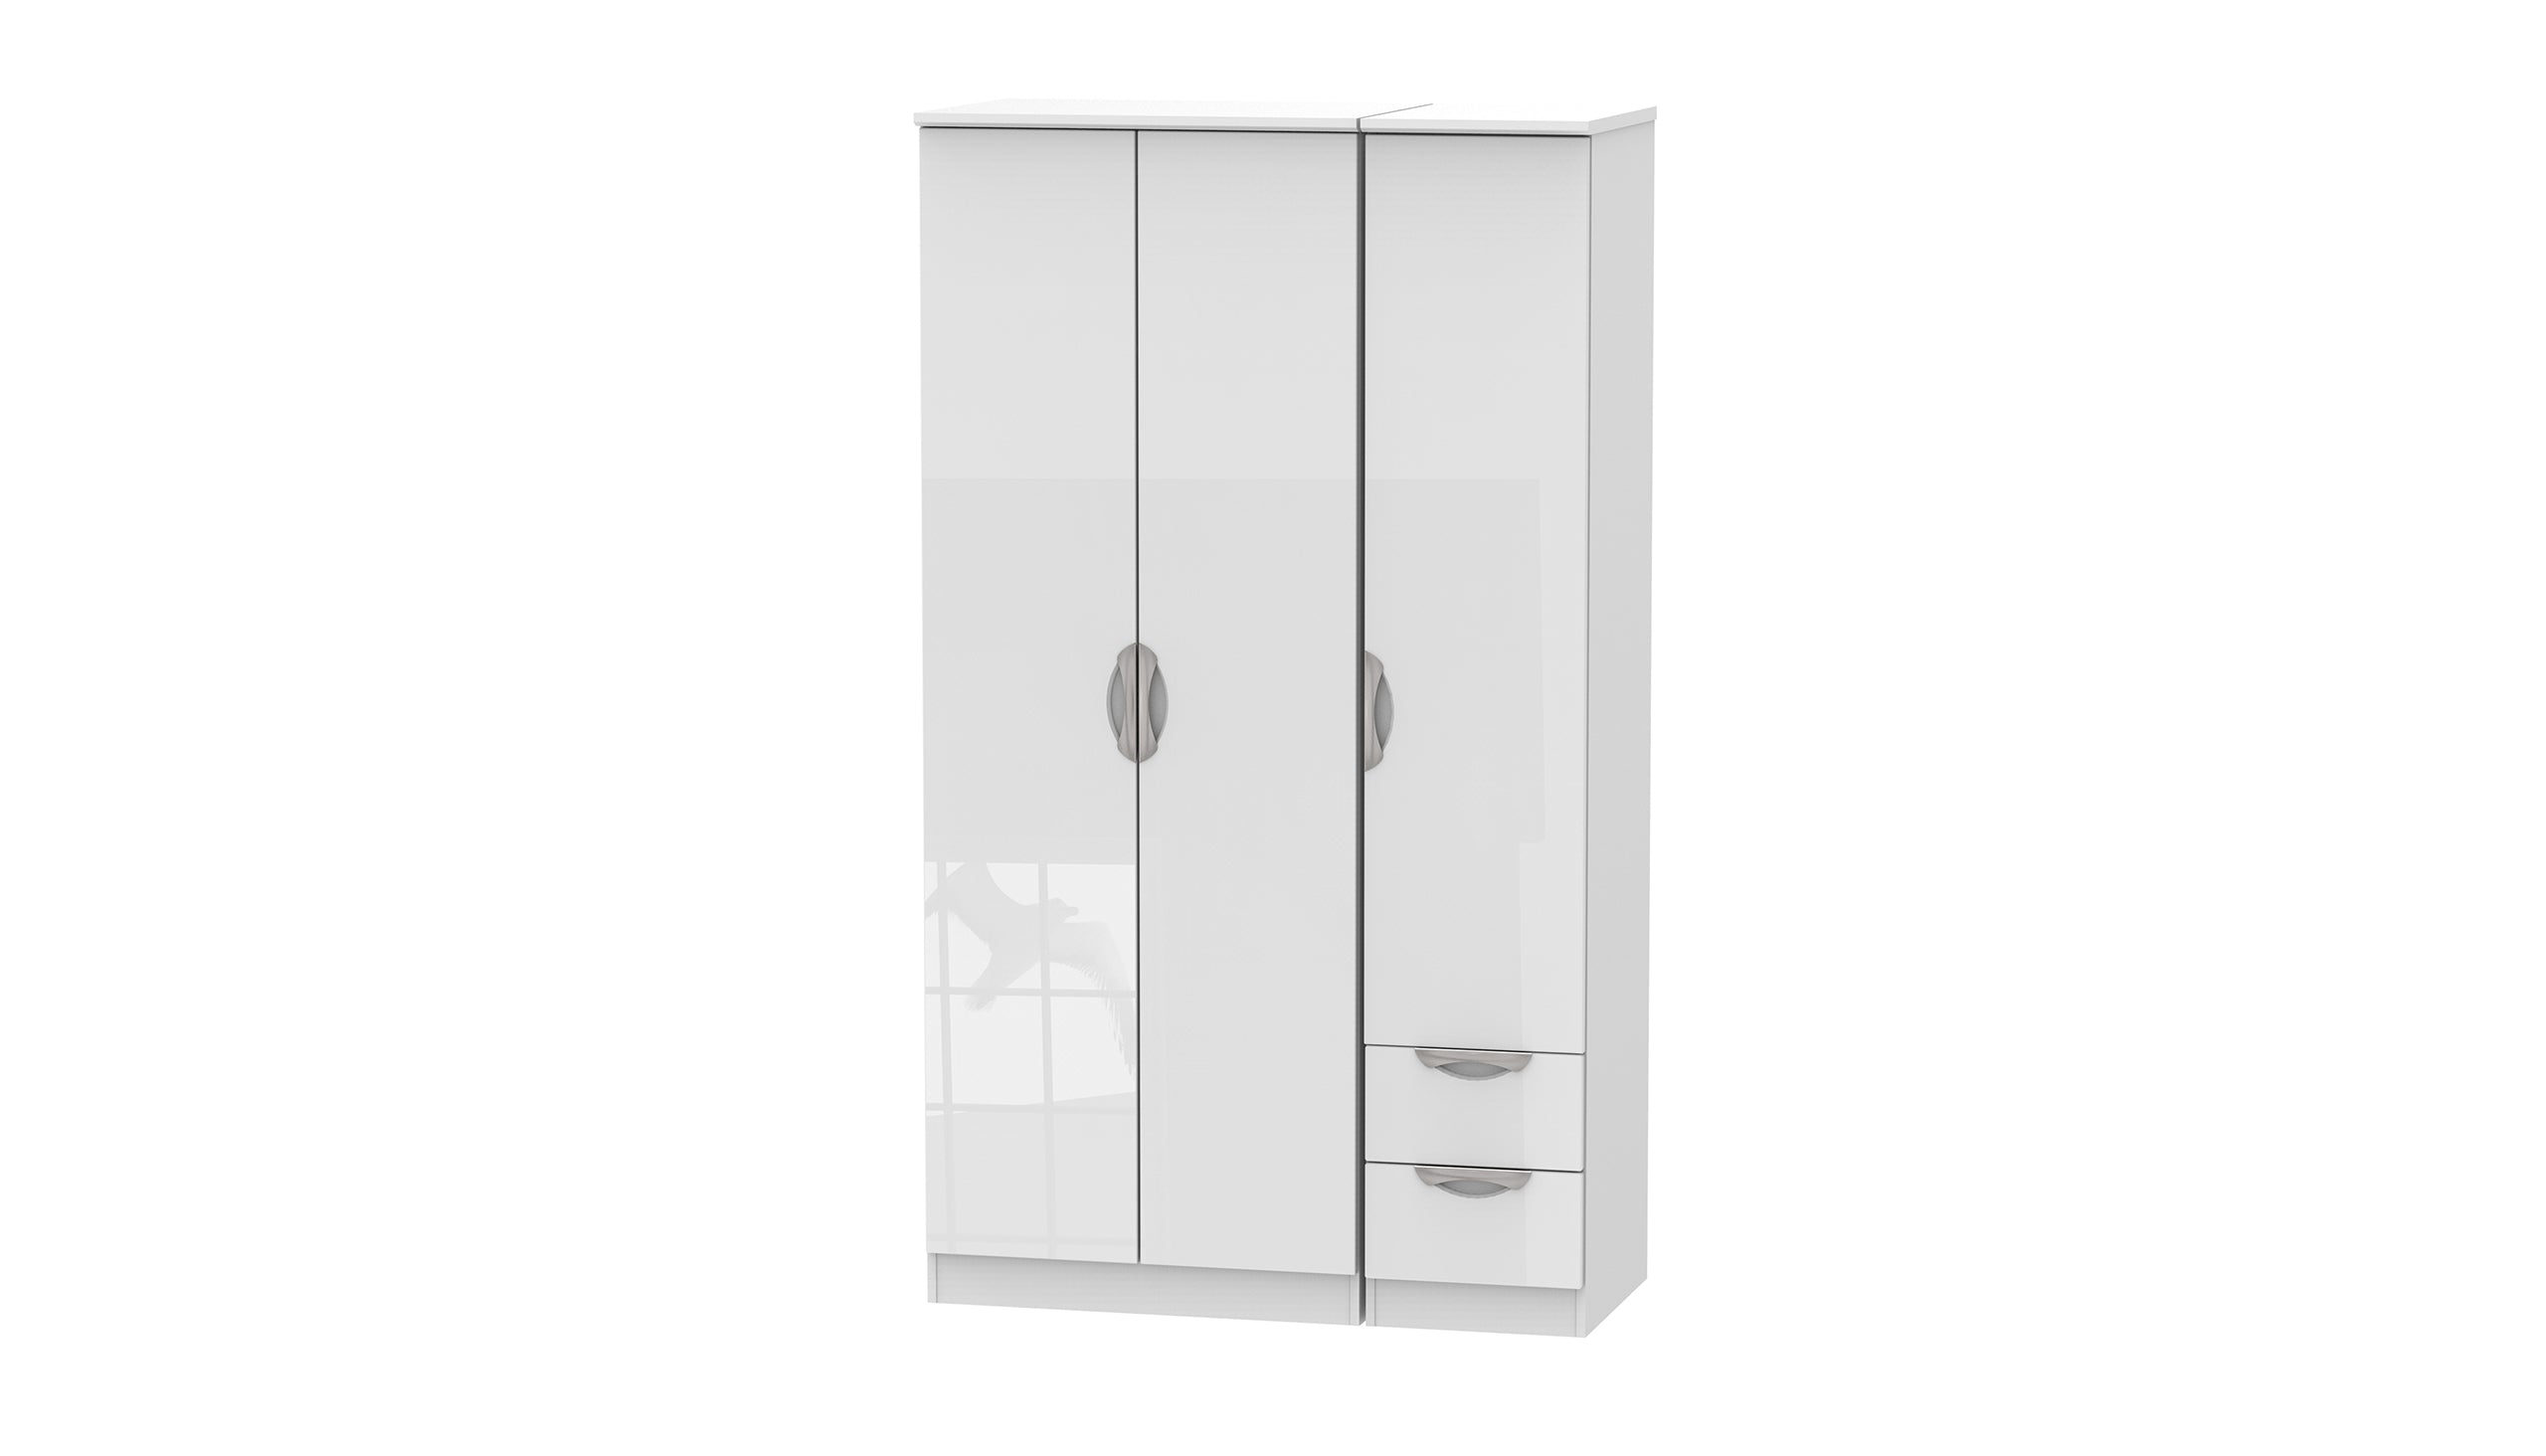 Moda Tall 3 Door 2 Small Drawer Wardrobe - AHF Furniture & Carpets